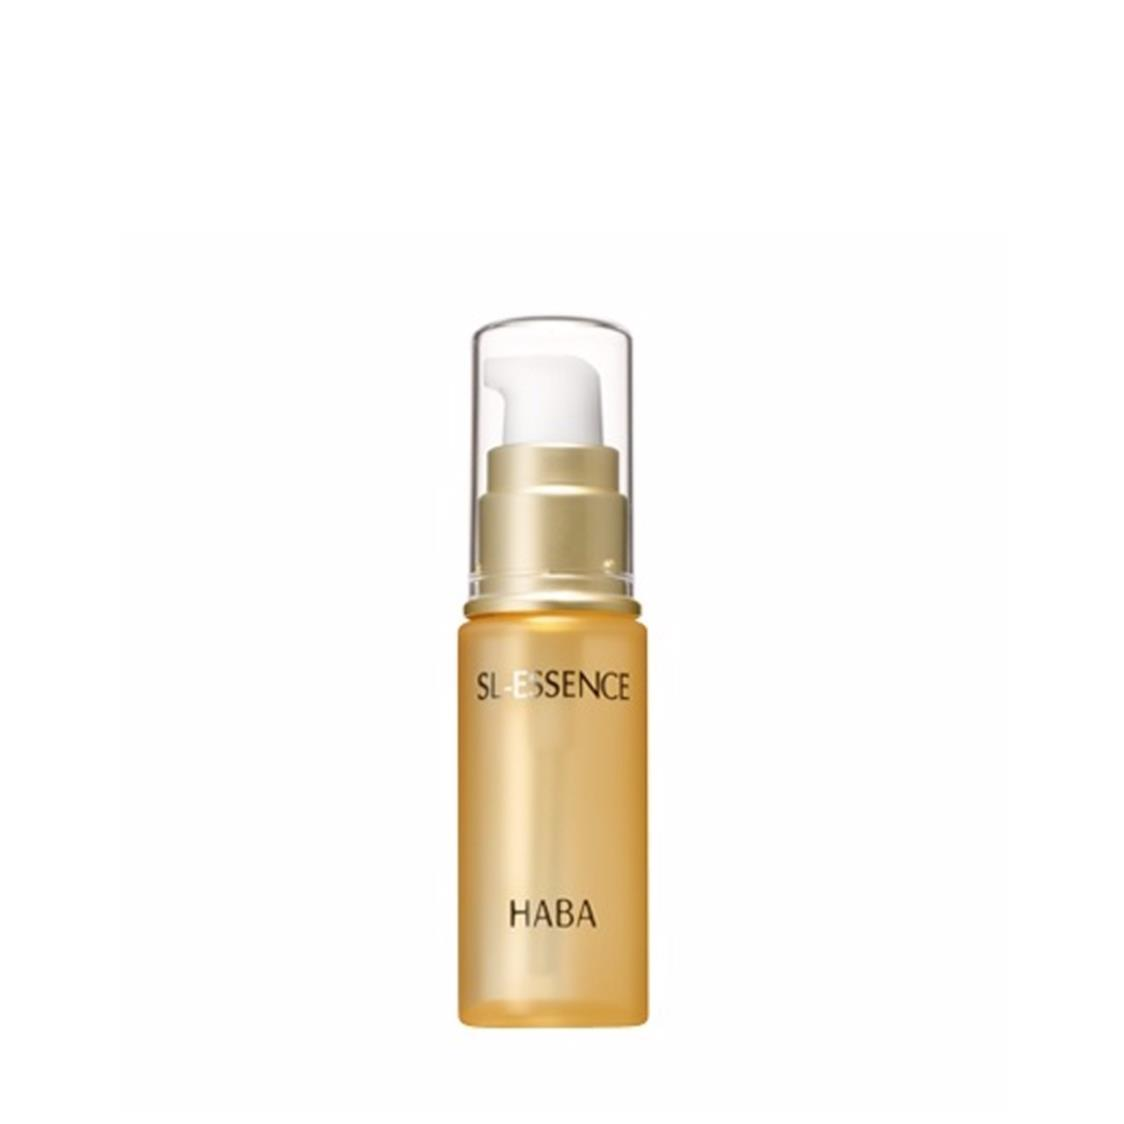 Sl-Essence 30ml